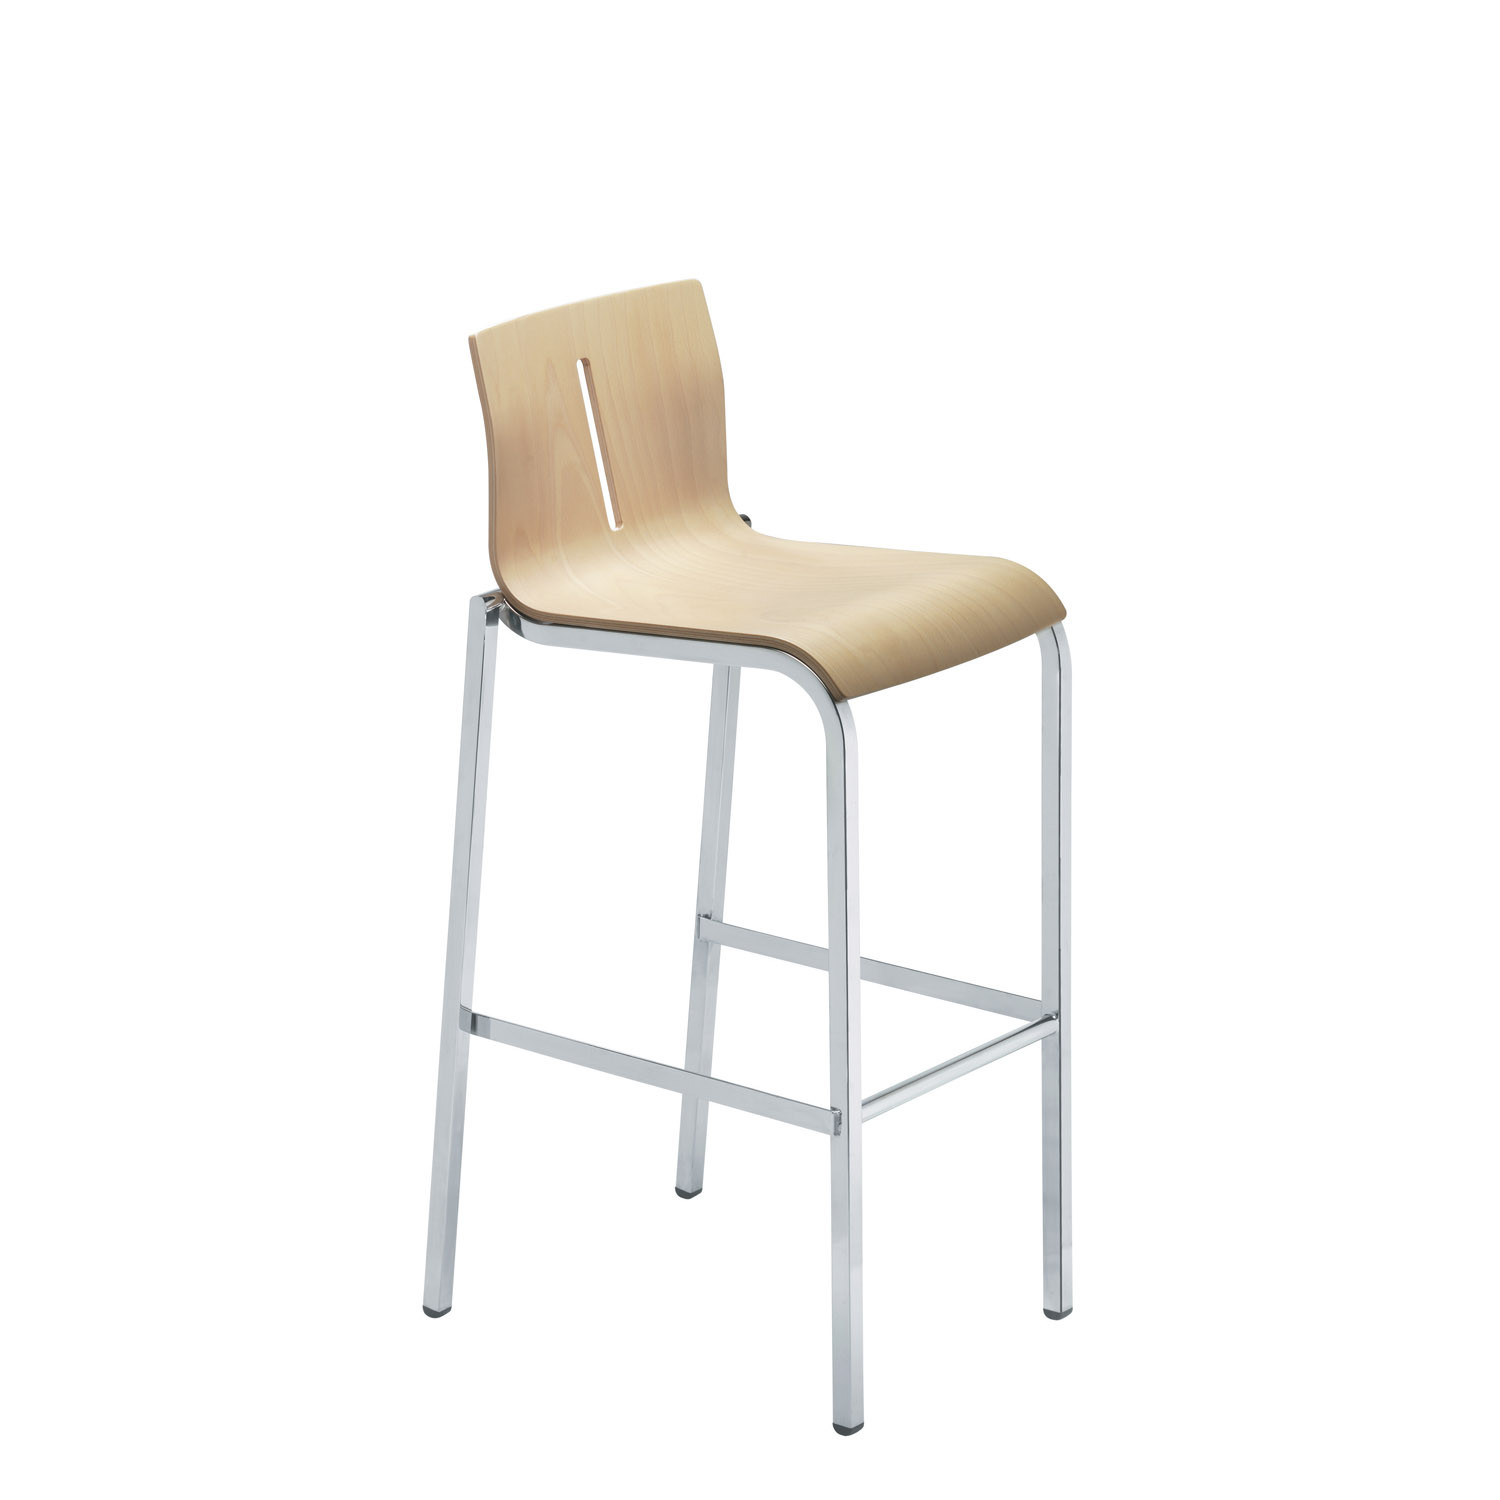 Vent Beech Wood Bar Stool